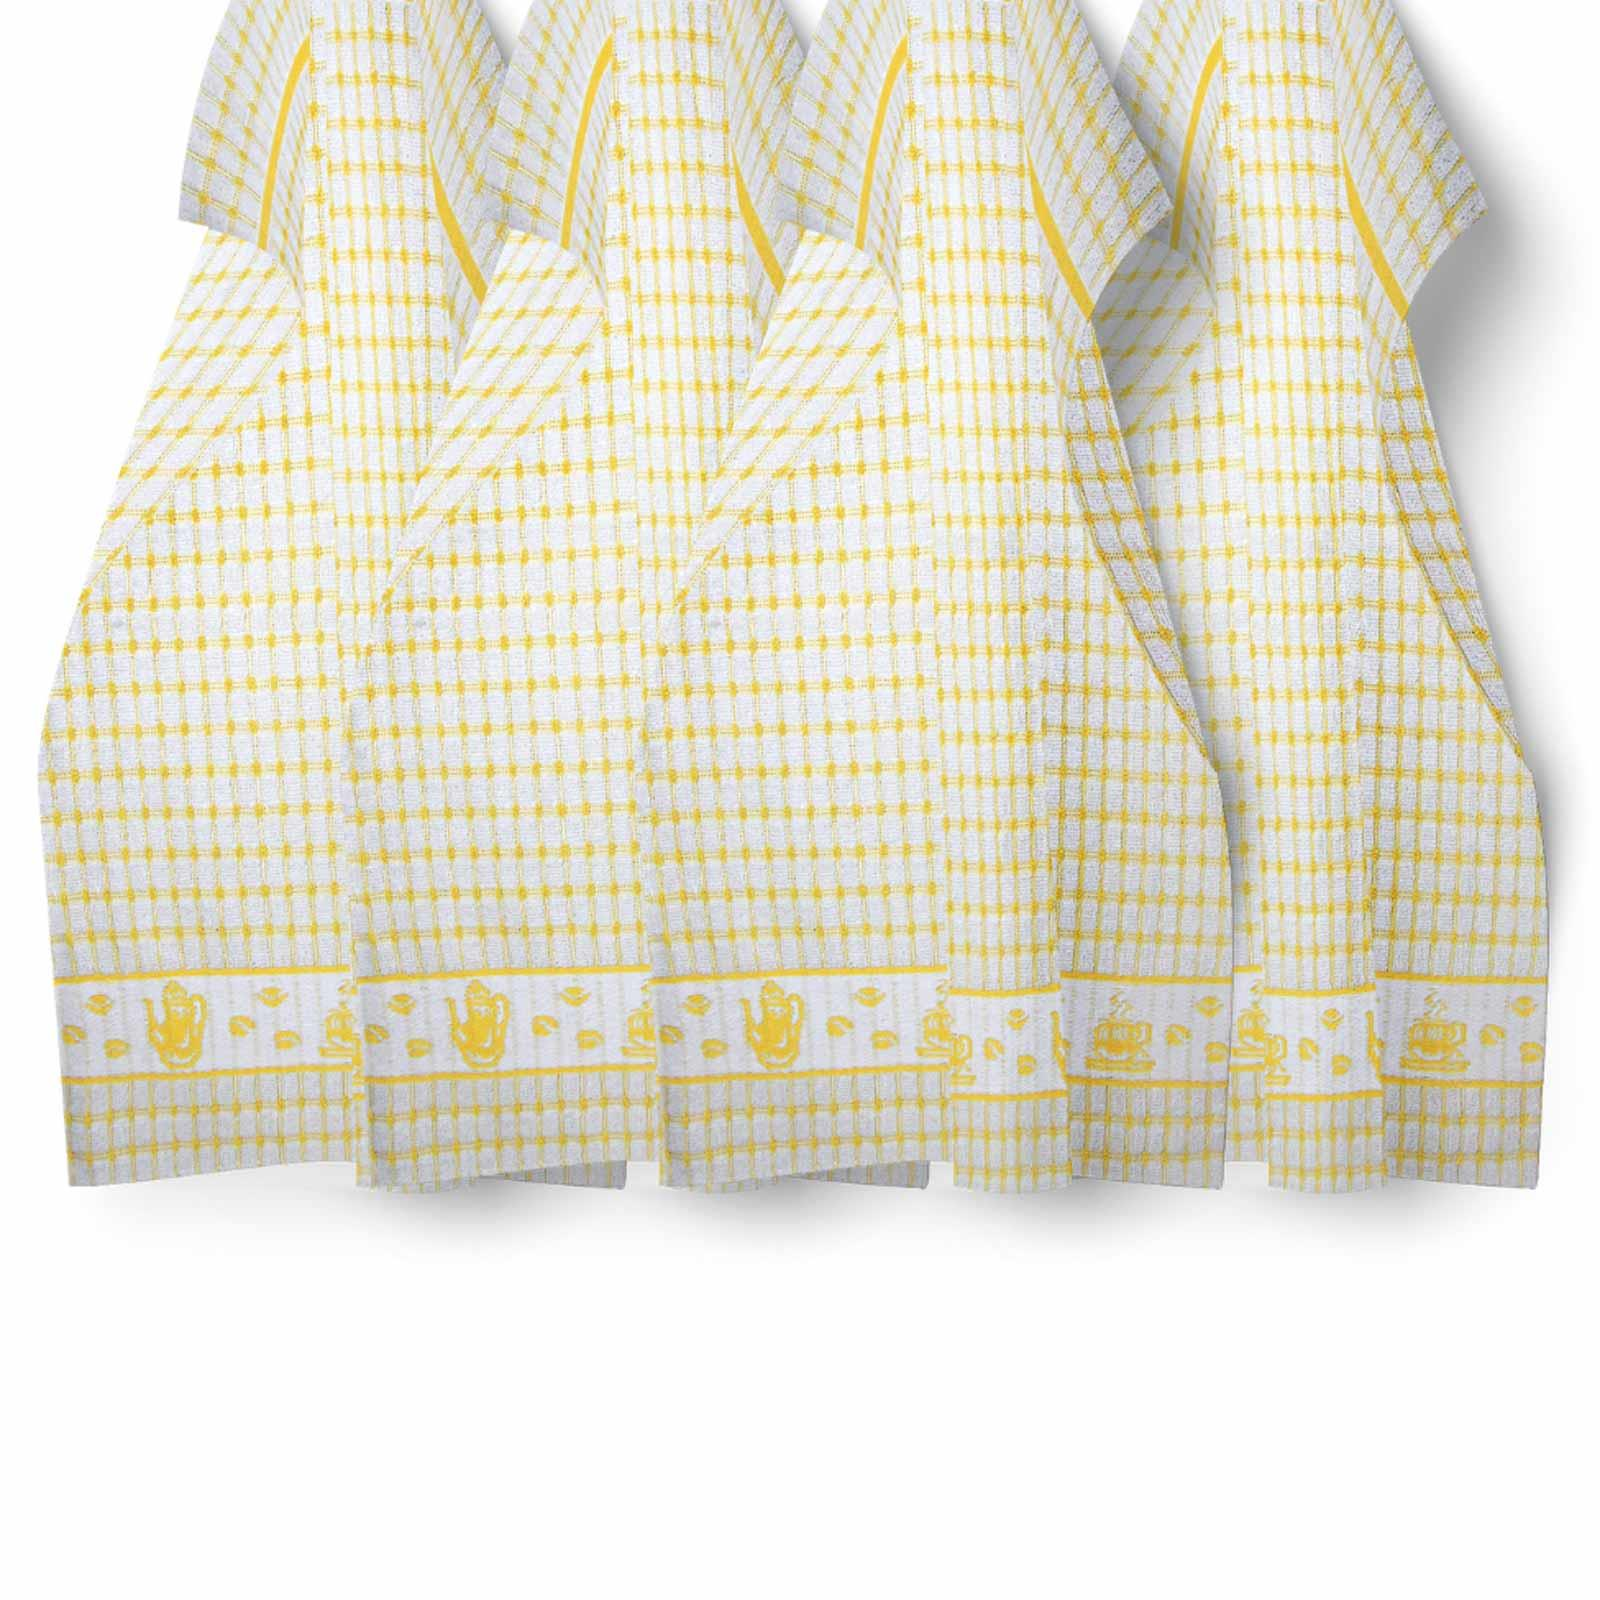 Packs-of-2-4-6-12-Tea-Towels-100-Cotton-Terry-Kitchen-Dish-Drying-Towel-Sets thumbnail 53